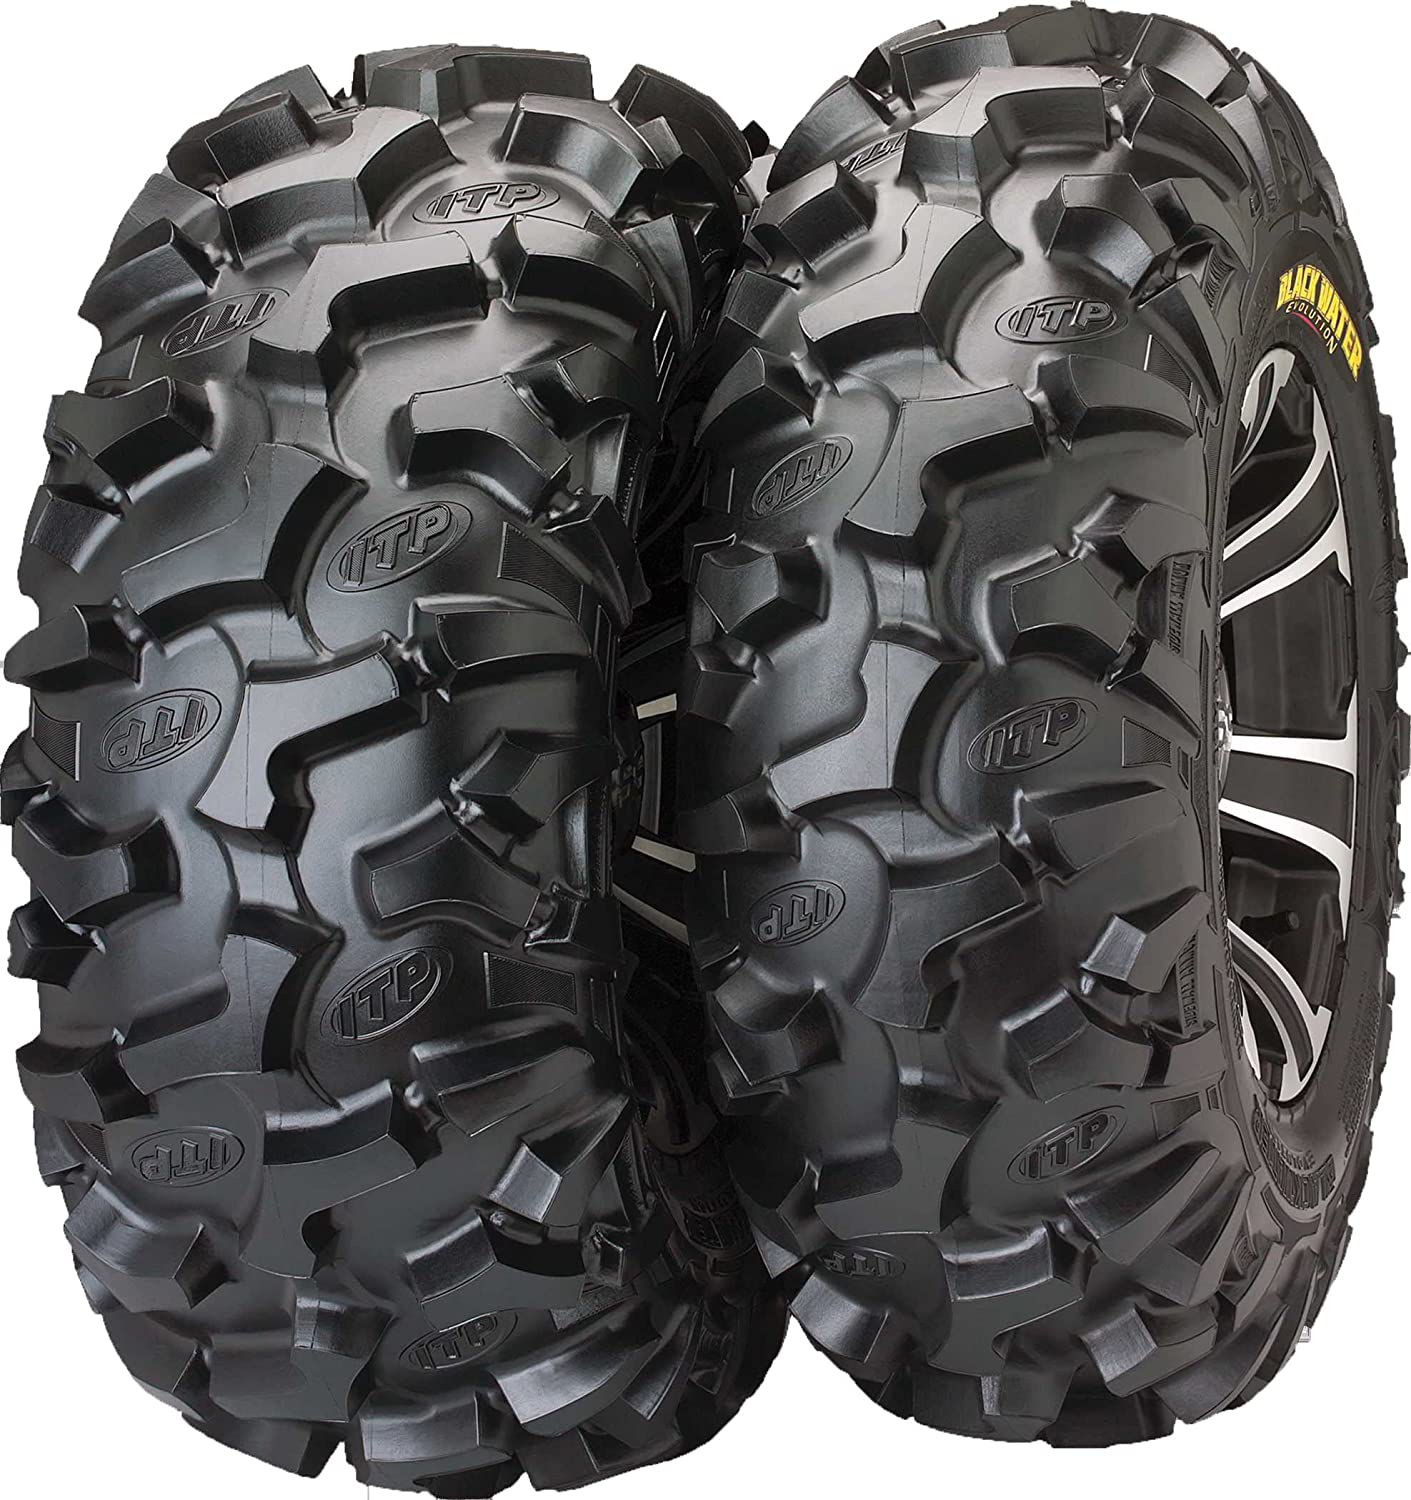 ITP Now free shipping Blackwater Evolution Radial Tire - Fits: Cat Arctic 5 popular 30x10-12